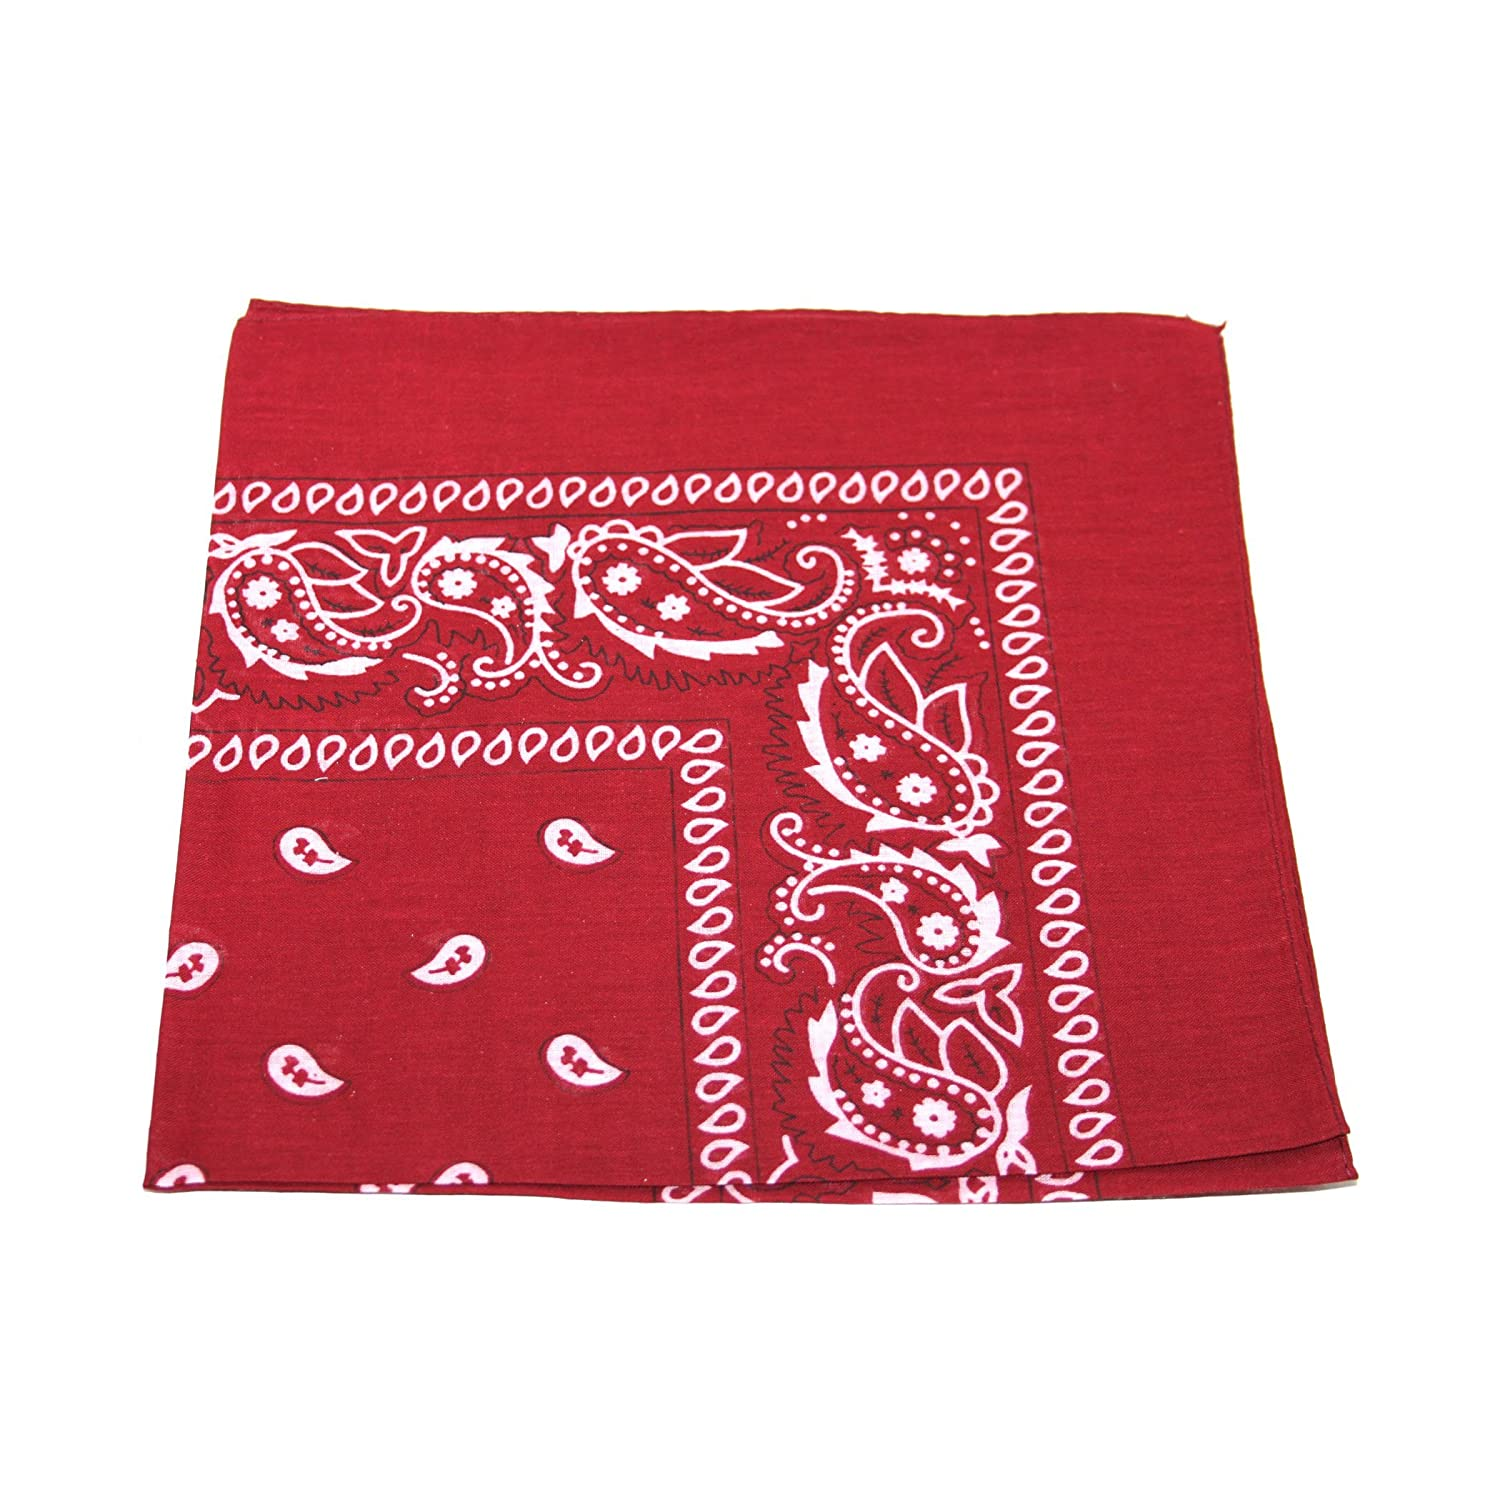 Paisley Bandana Headwear Hair Bands Scarf Neck Wrist Wrap Band Head tie